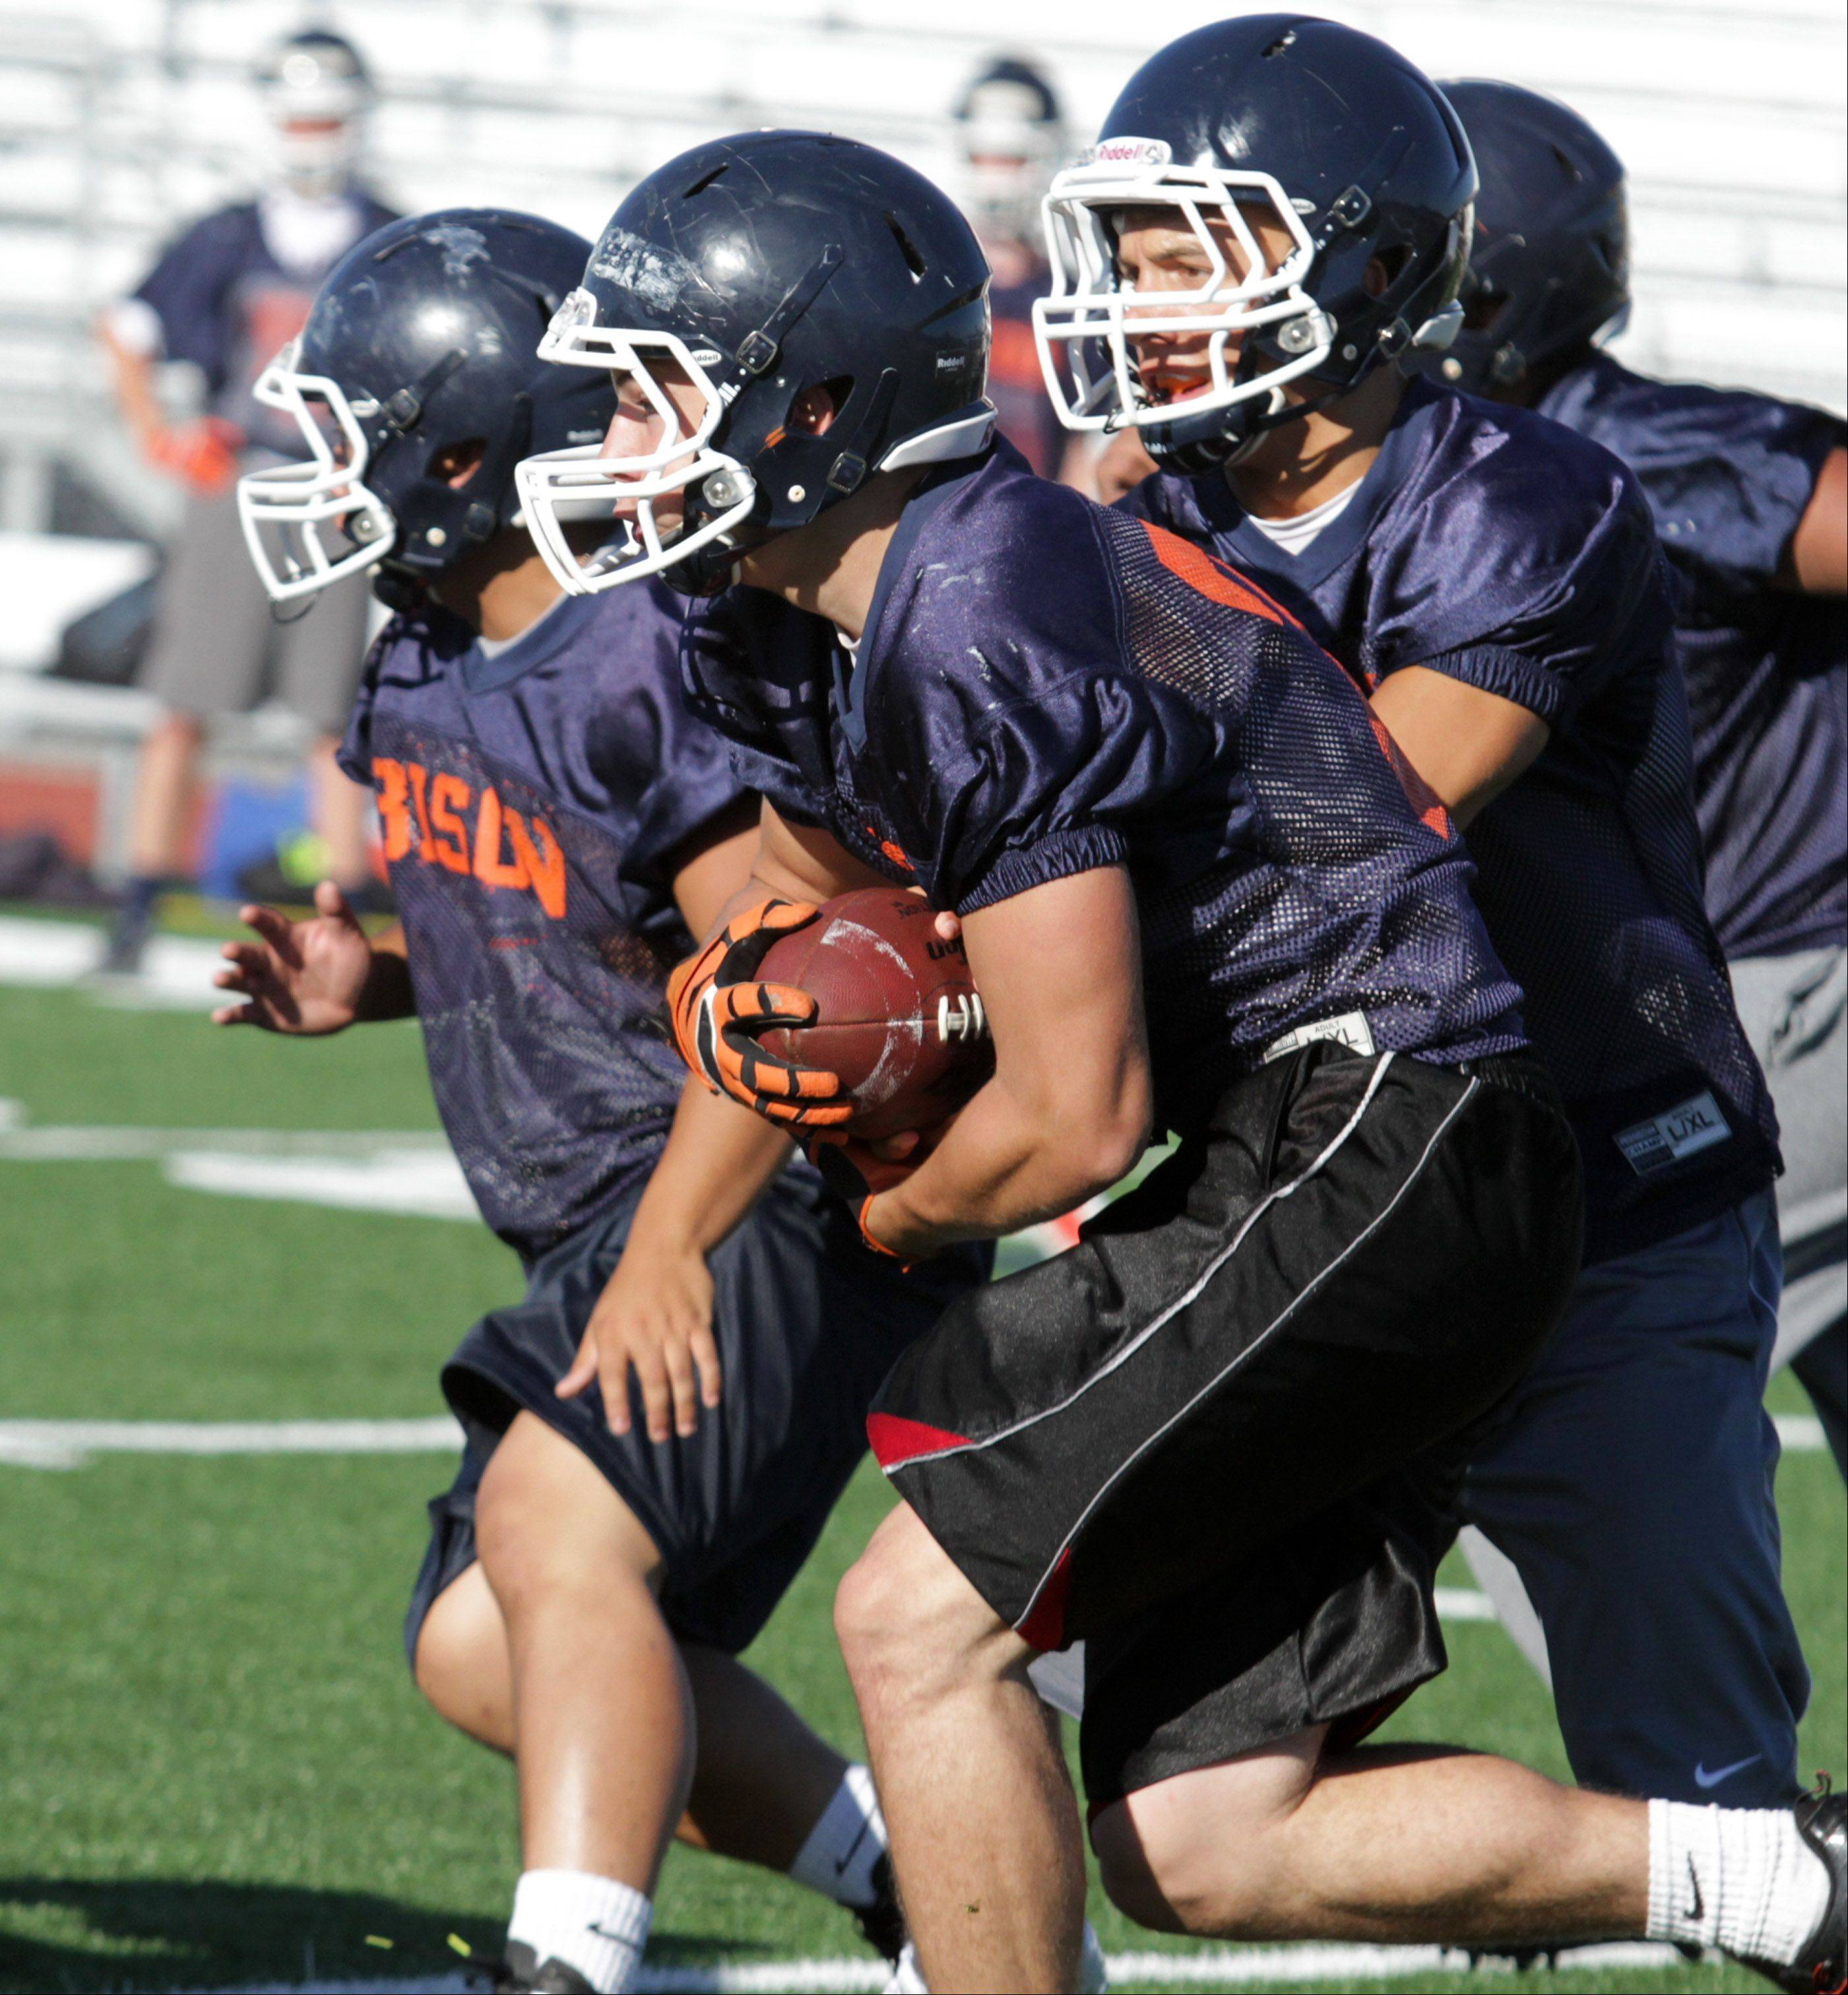 Buffalo Grove quarterback Andrew Apel hands the ball off to fullback Scott Smitheren in preparation for Friday's home opener against Leyden.